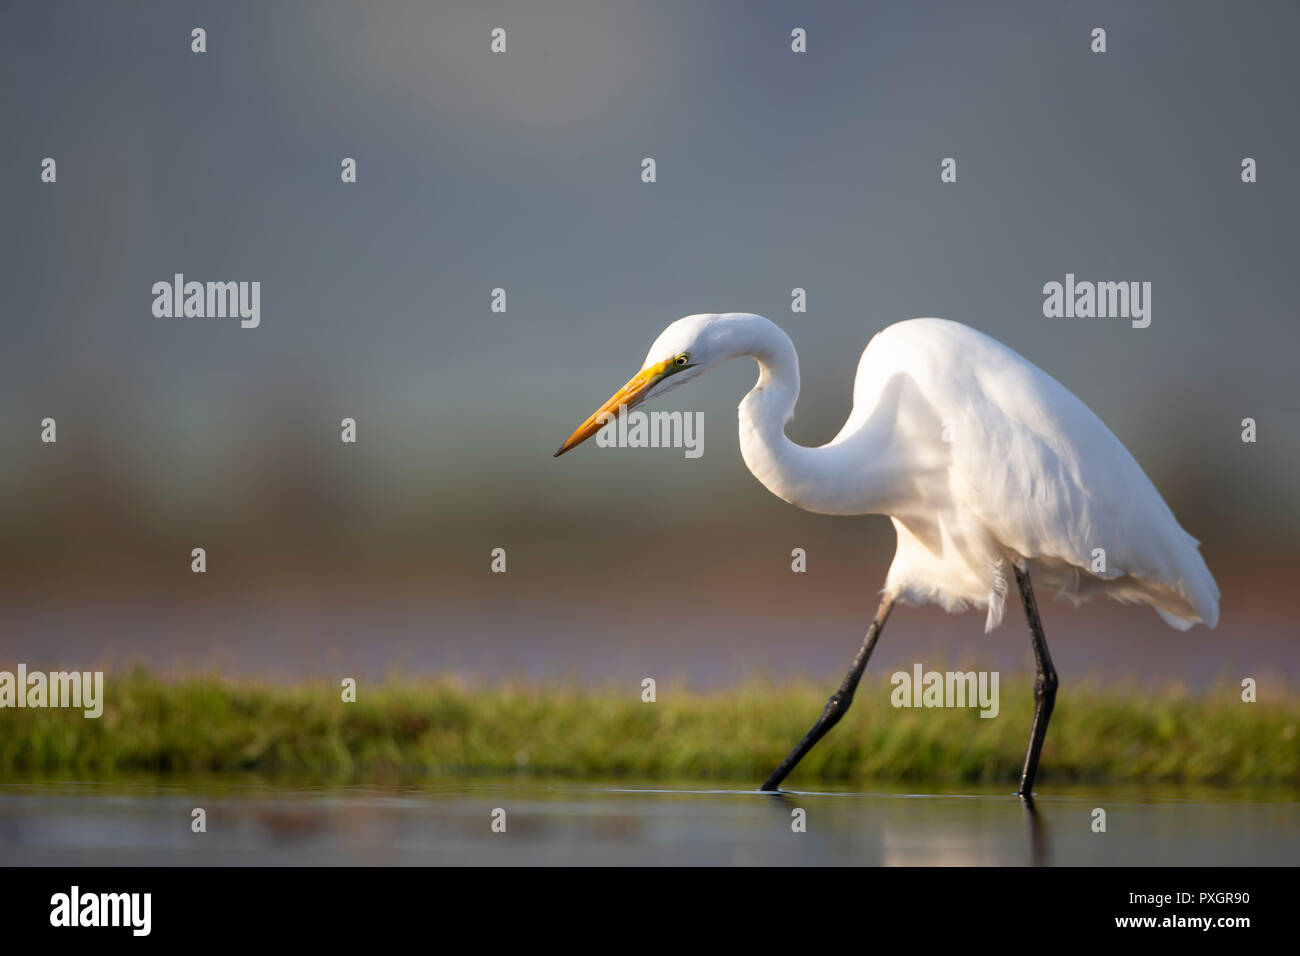 A Great Egret Ardea alba on the lookout for food in a shallow lagoon in Kwa Zulu Natal, South Africa - Stock Image